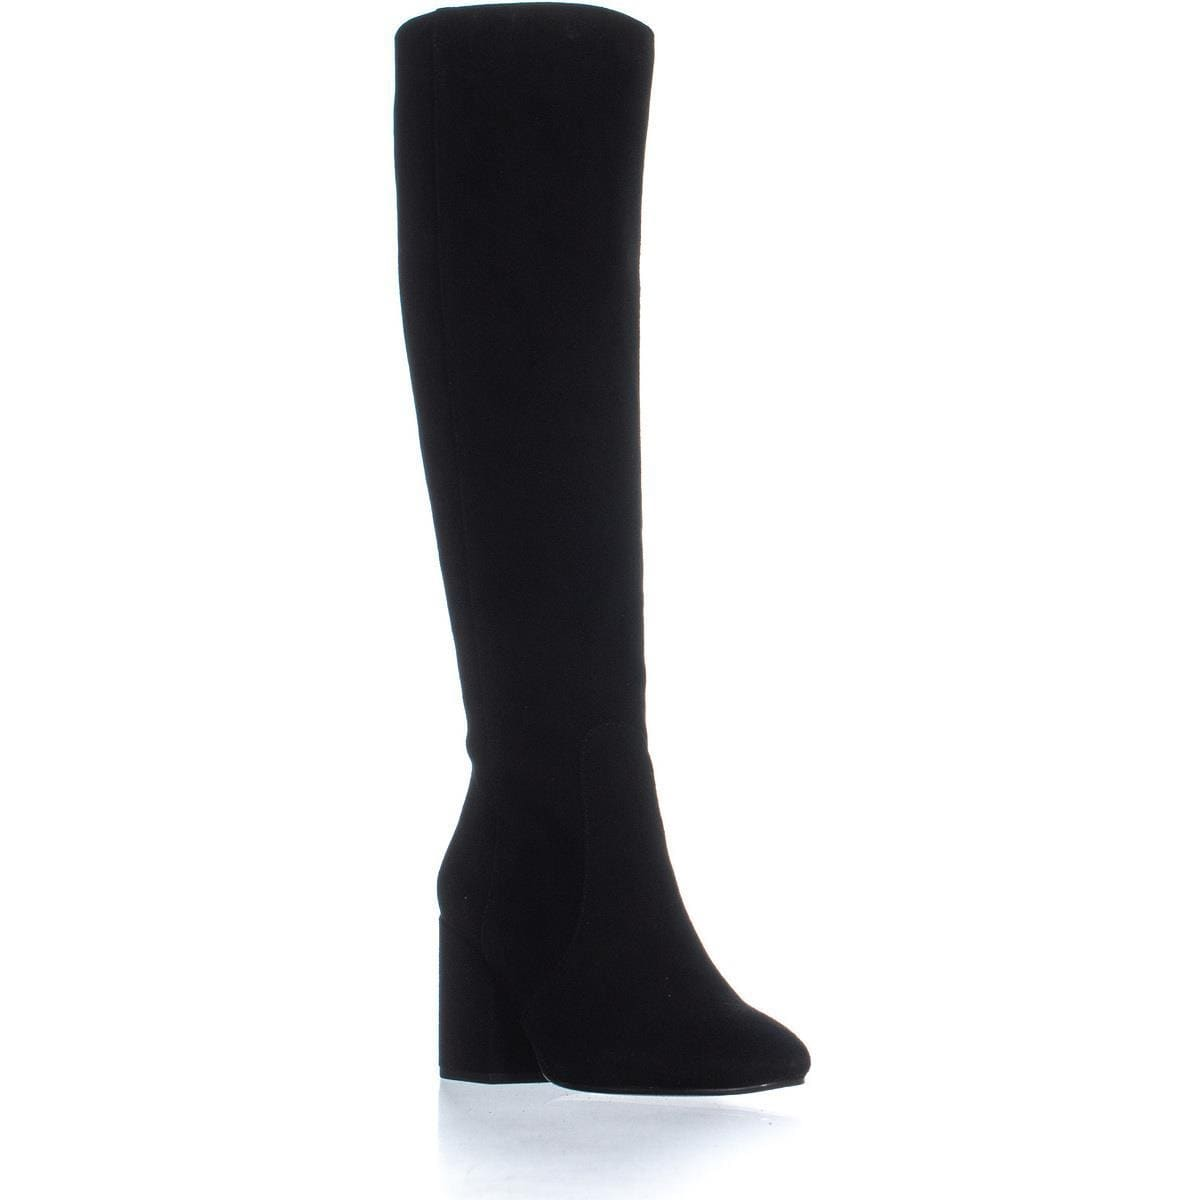 64fcc715fb1 Shop Sam Edelman Thora Knee High Boots